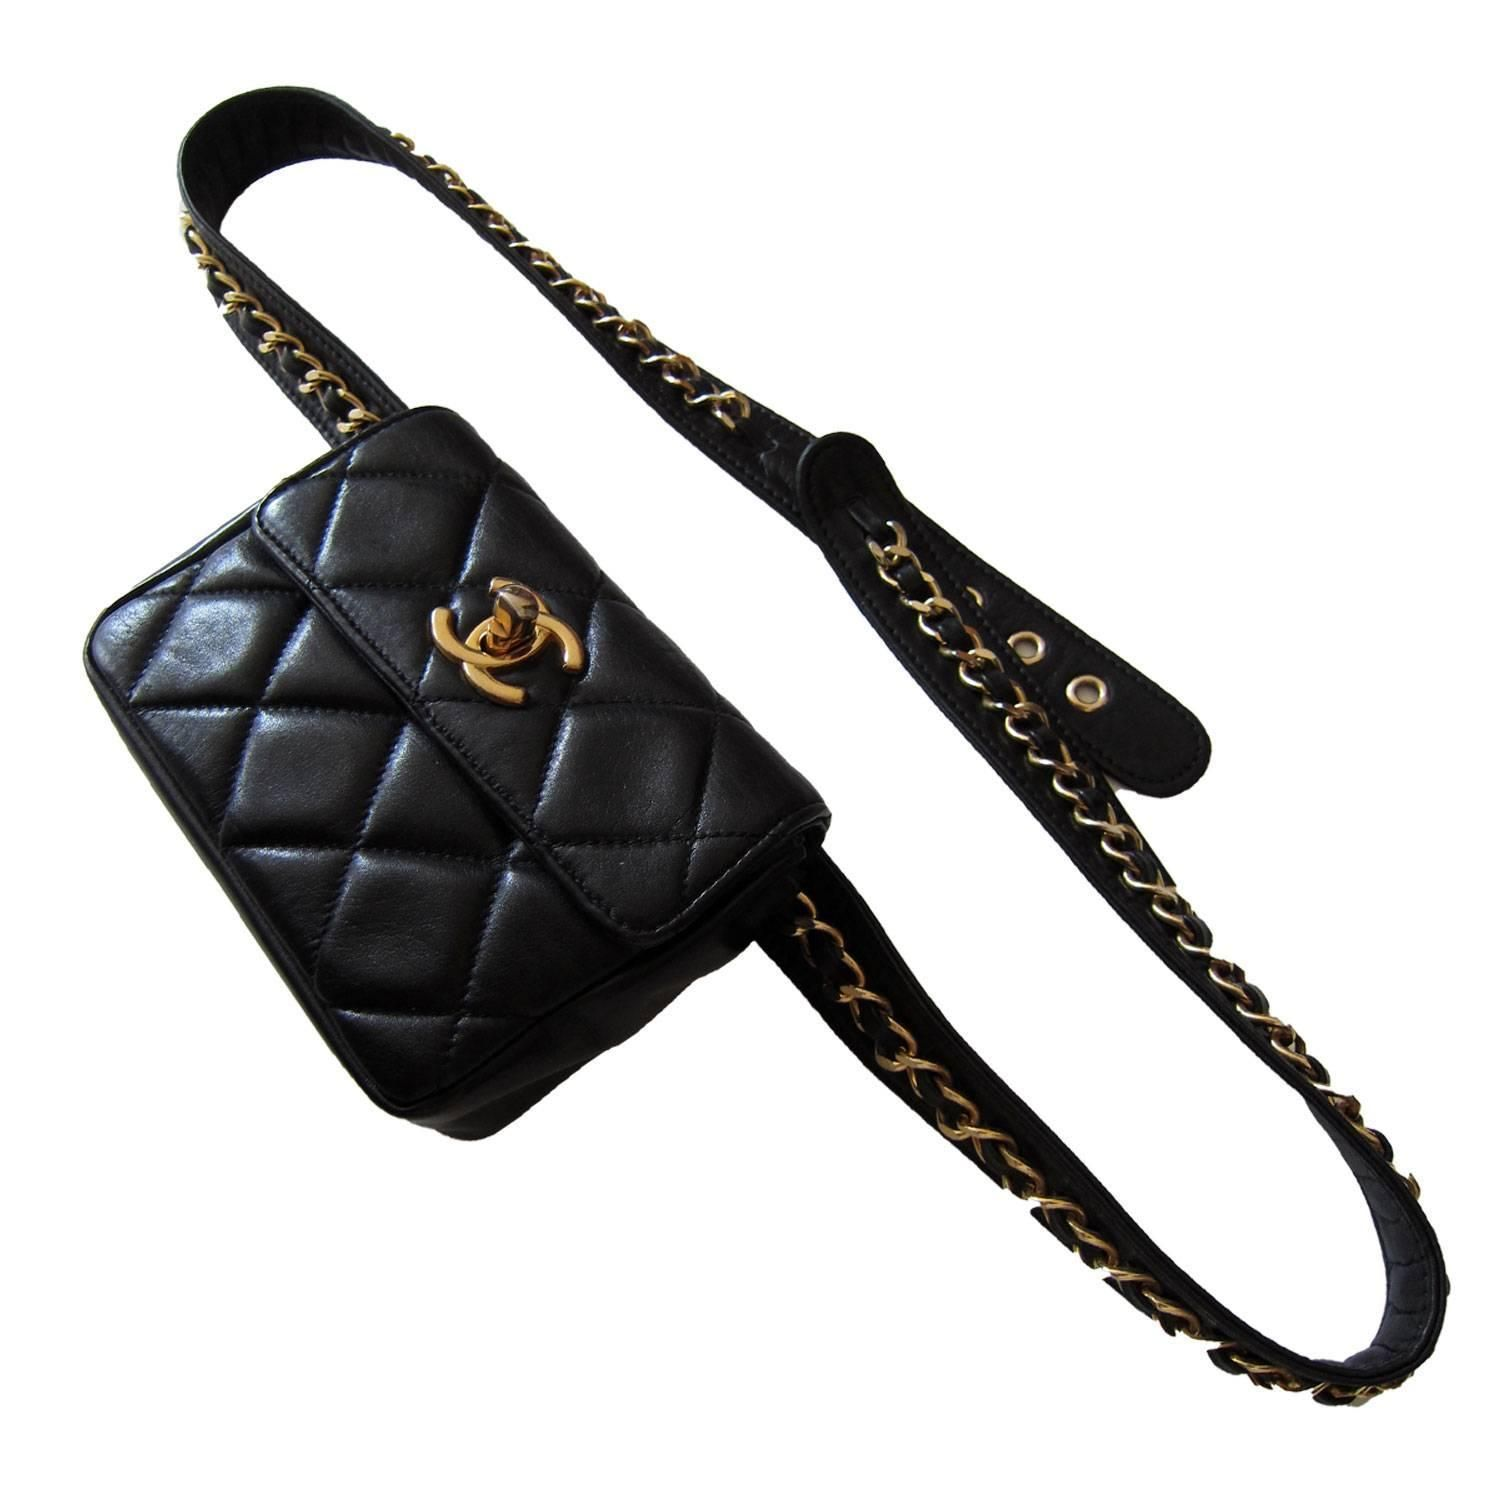 76e6341e4911 Leather Bum Bags, Leather Fanny Pack, Leather Chain, Black Leather, Leather  Handbags